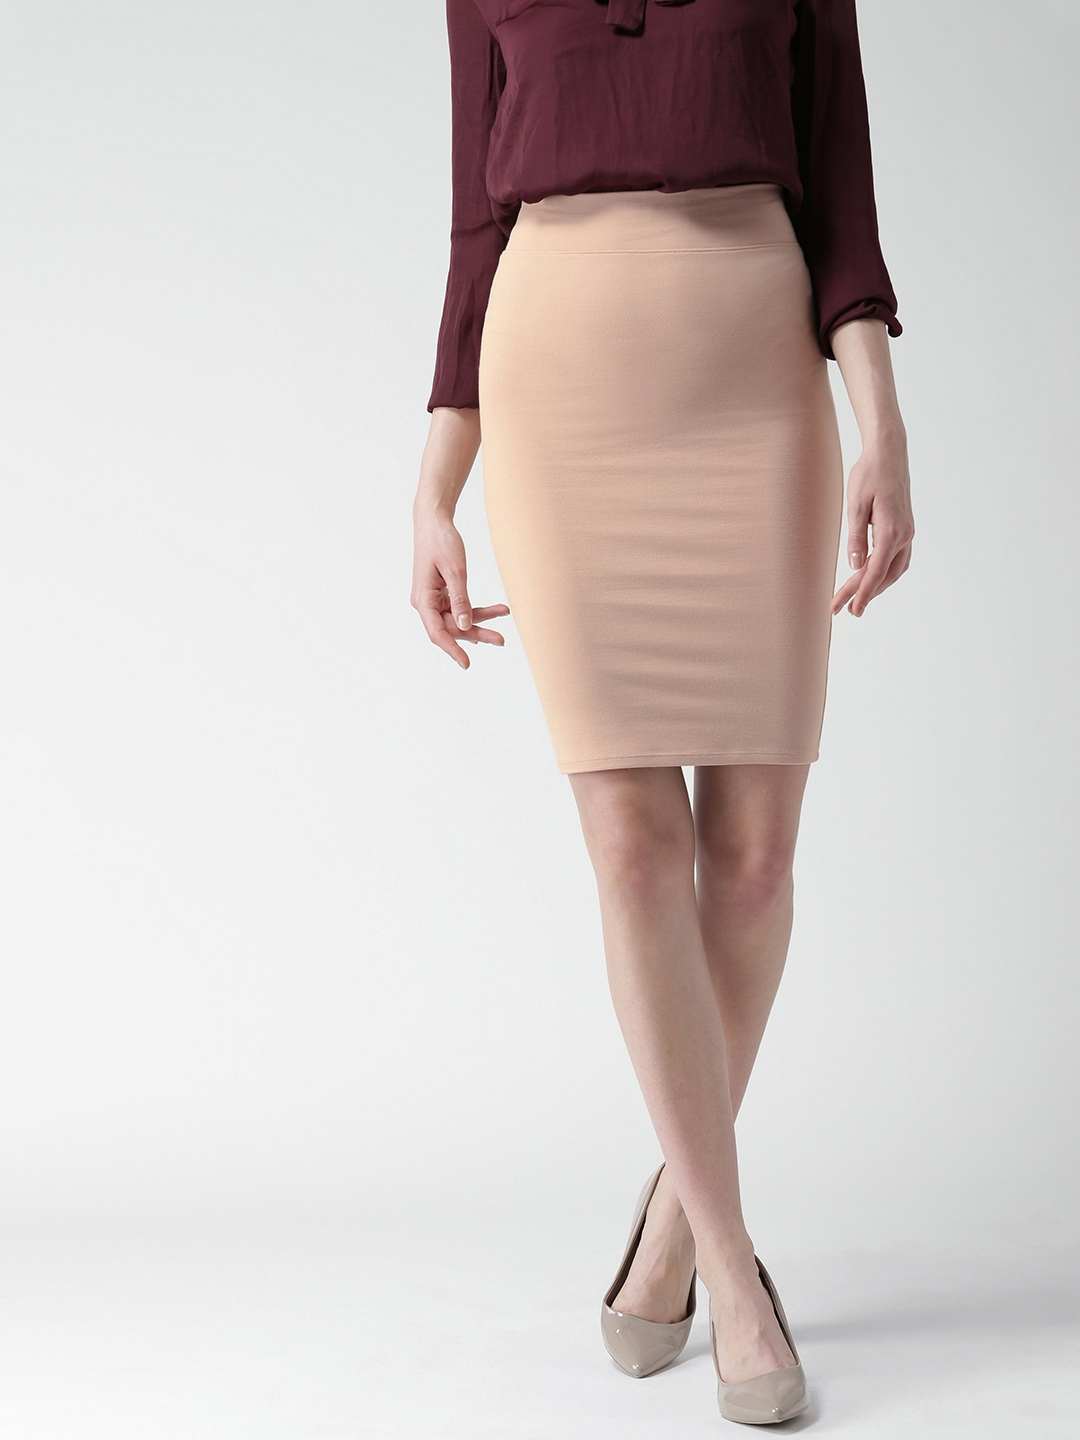 96c69523a9 Buy FOREVER 21 Dusty Pink Pencil Skirt - Skirts for Women 1793074 ...